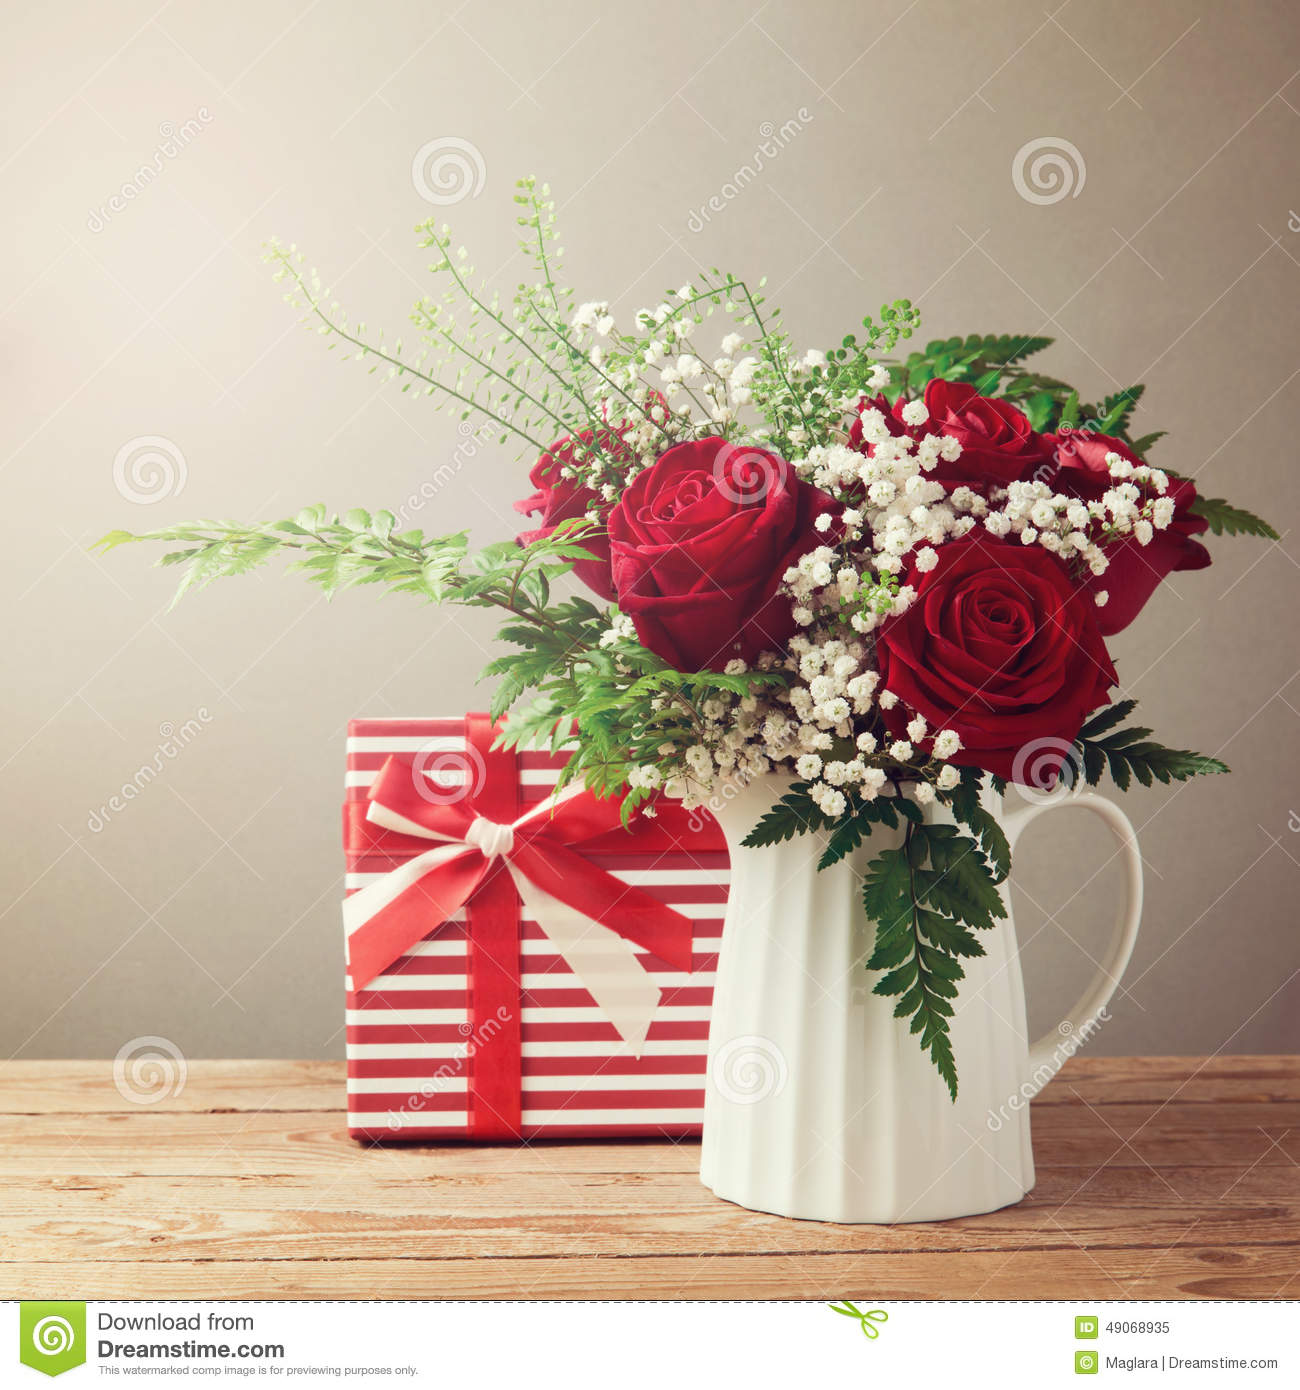 Rose Flower Bouquet And Gift Box On Wooden Table Stock